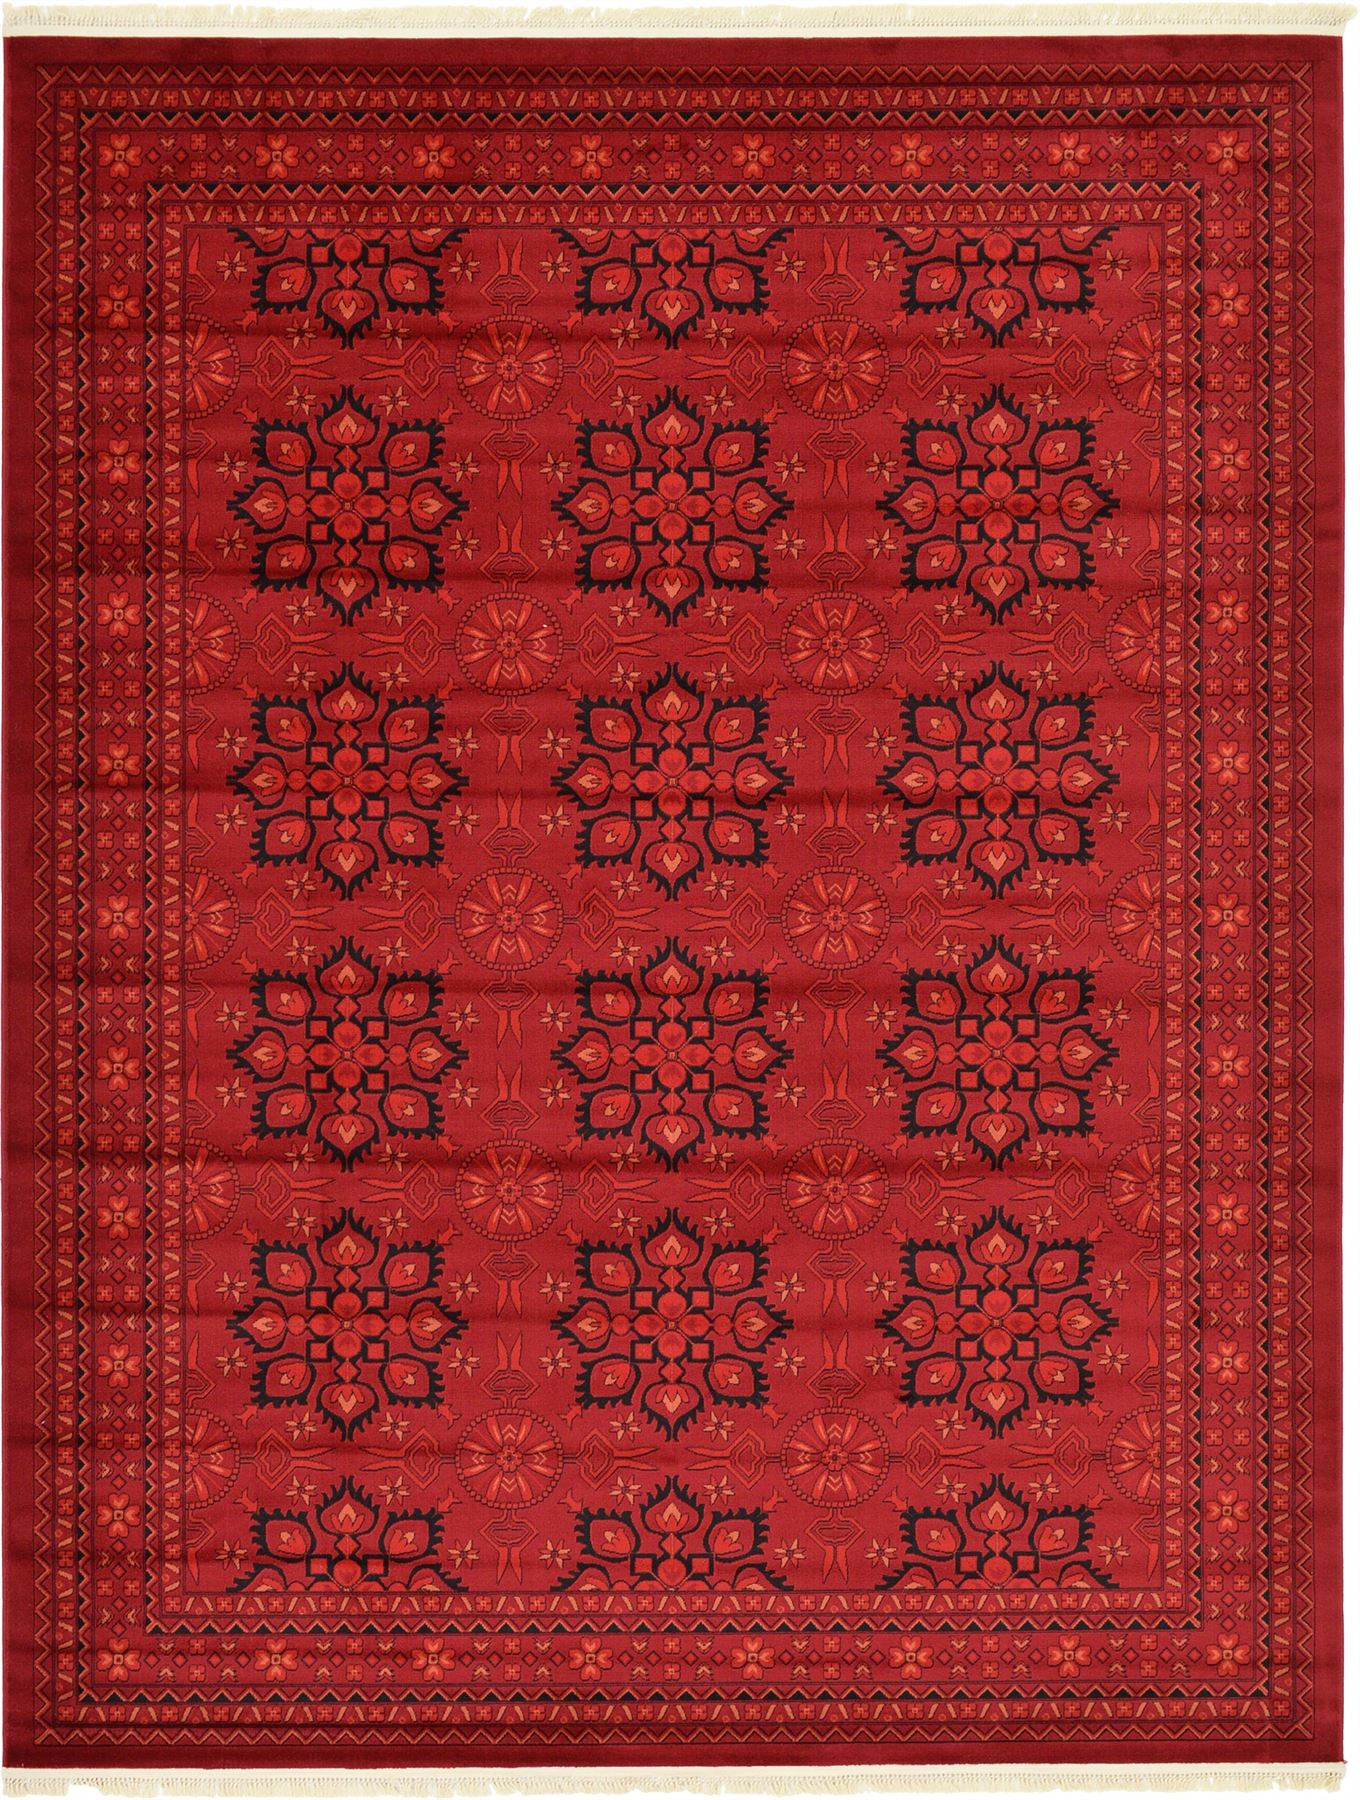 new rugs rugs carpets articles brand new carpet antique design woven rug 4x6 bokhara. Black Bedroom Furniture Sets. Home Design Ideas